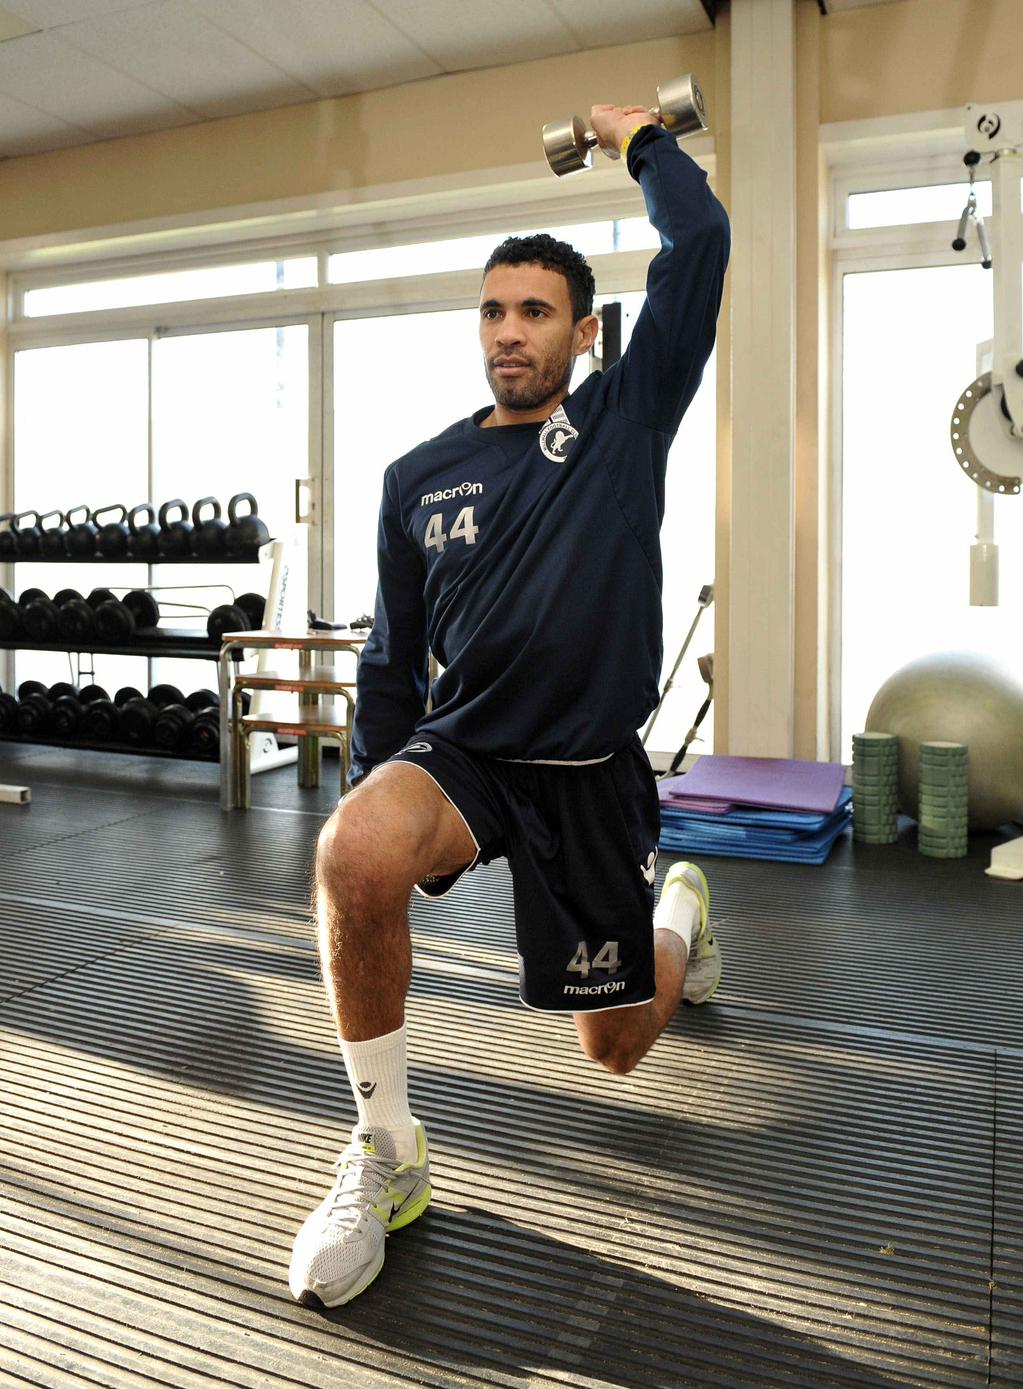 Carlos Edwards in the gym rehabilitating his knees